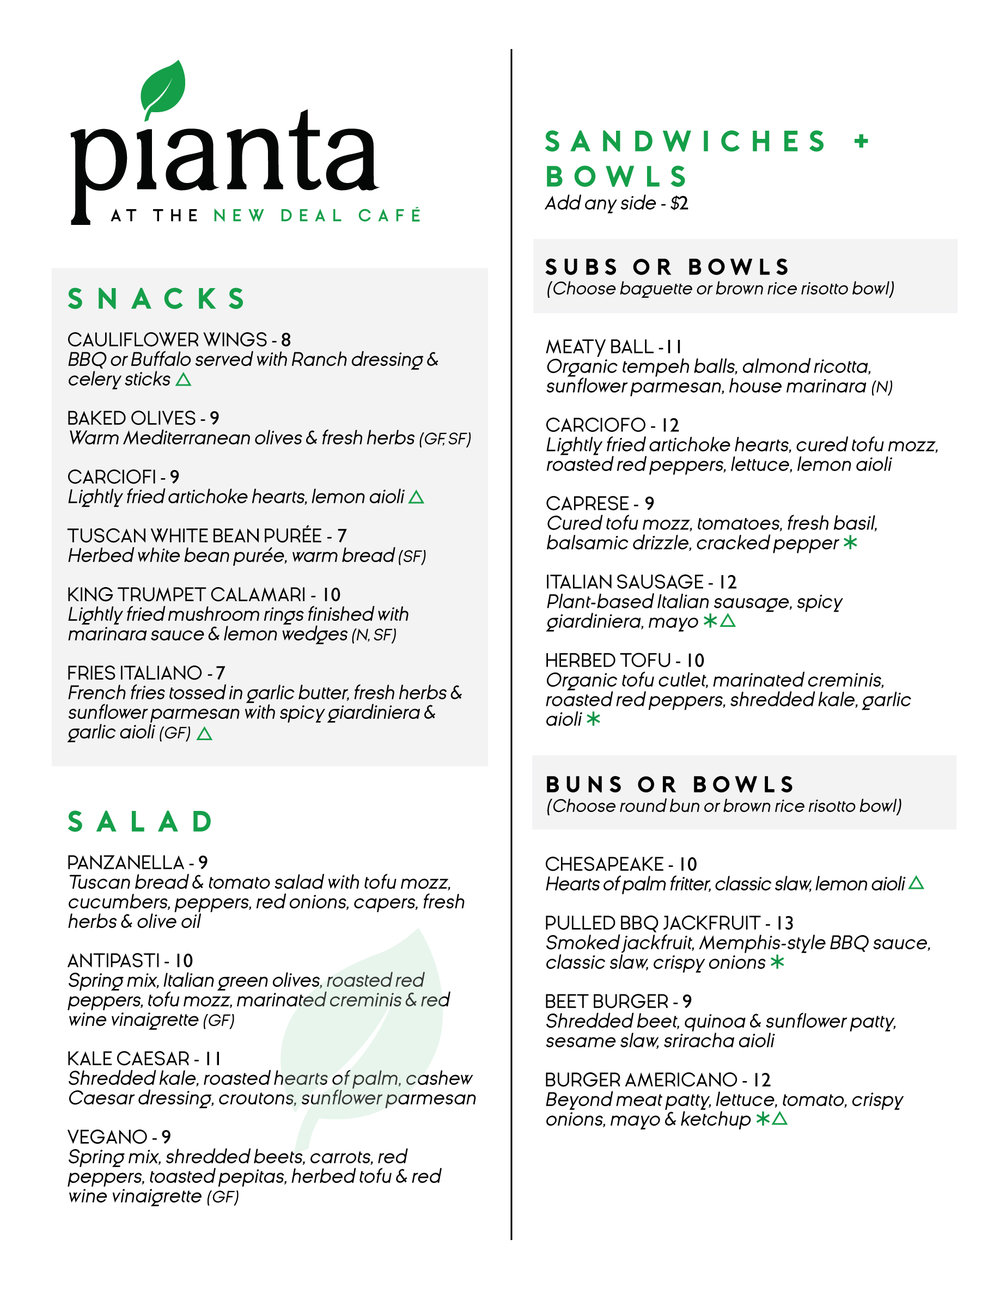 Pianta Menu Page 1 - Cafe - August.jpg